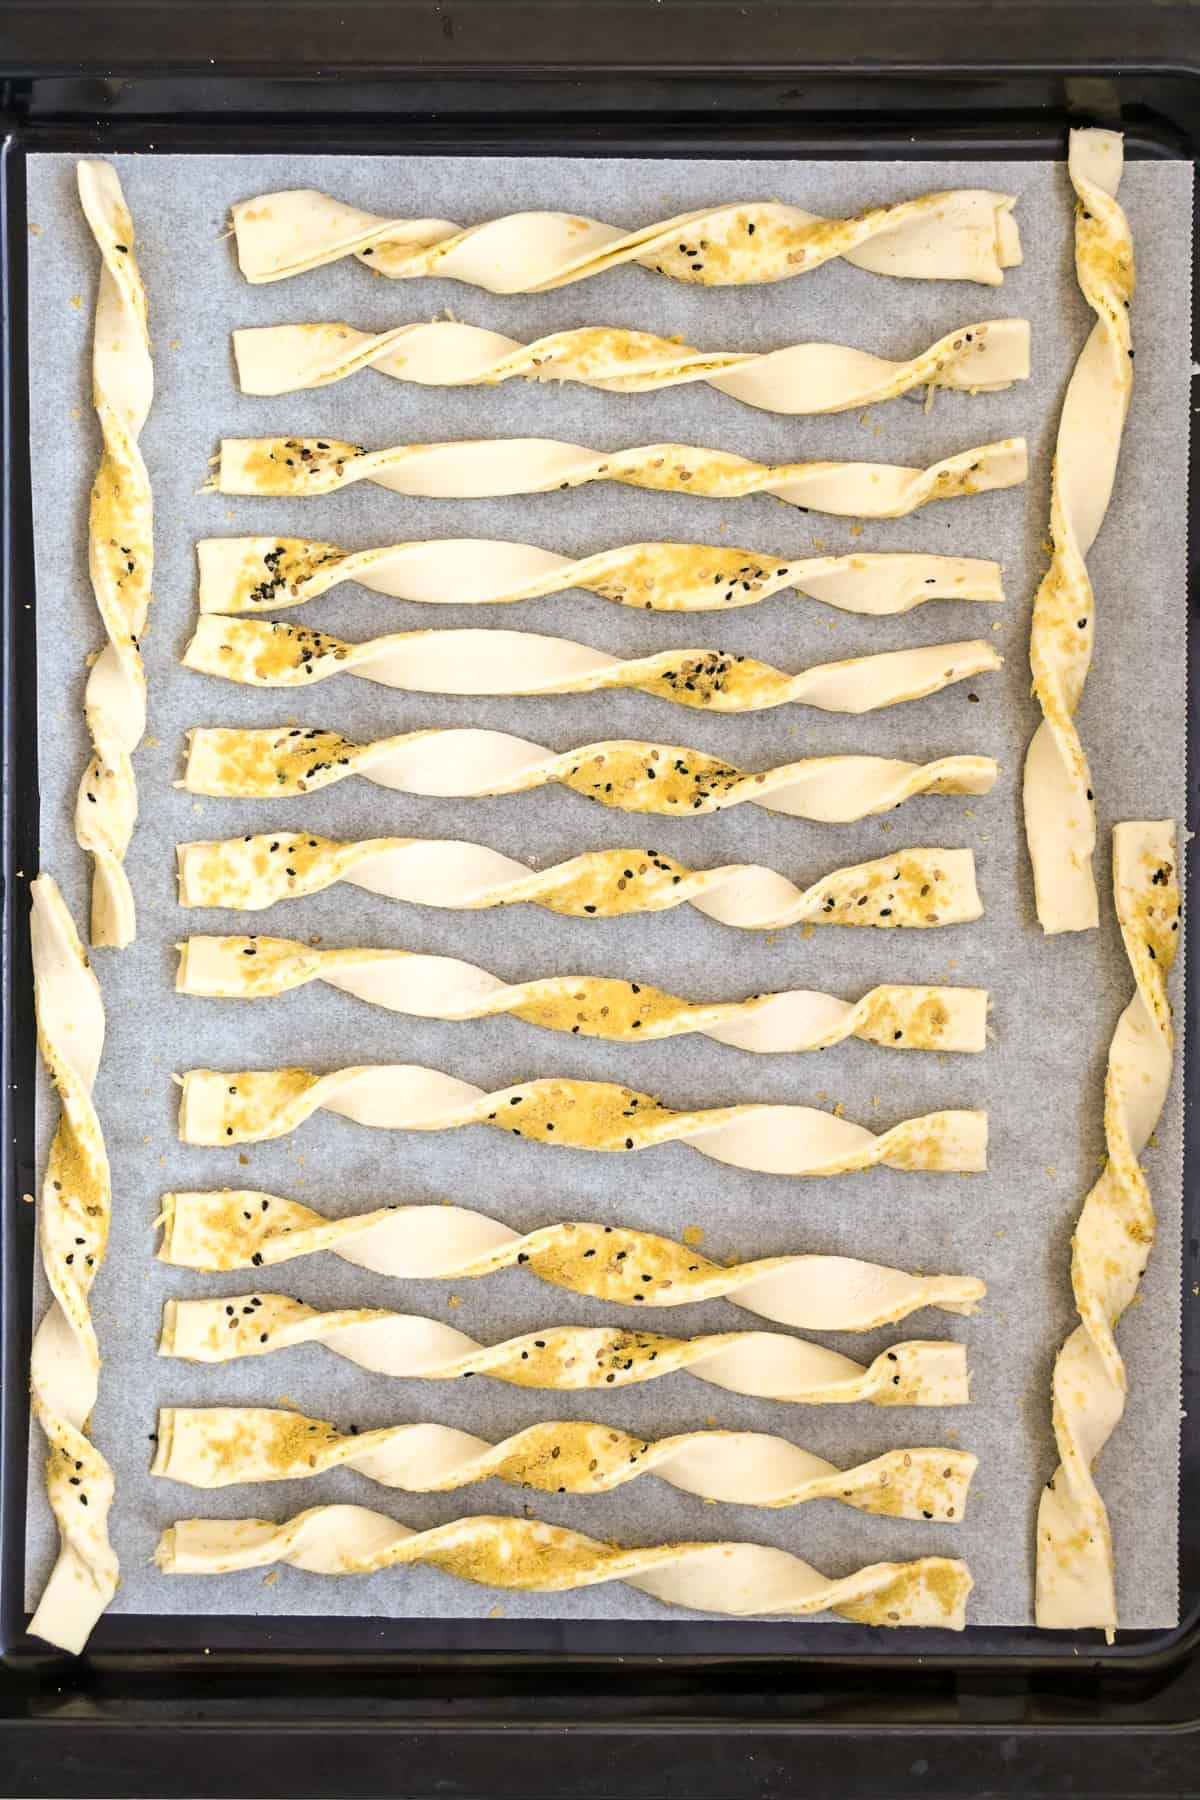 The straws are twisted into spirals and set down on a lined baking tray ready for baking.